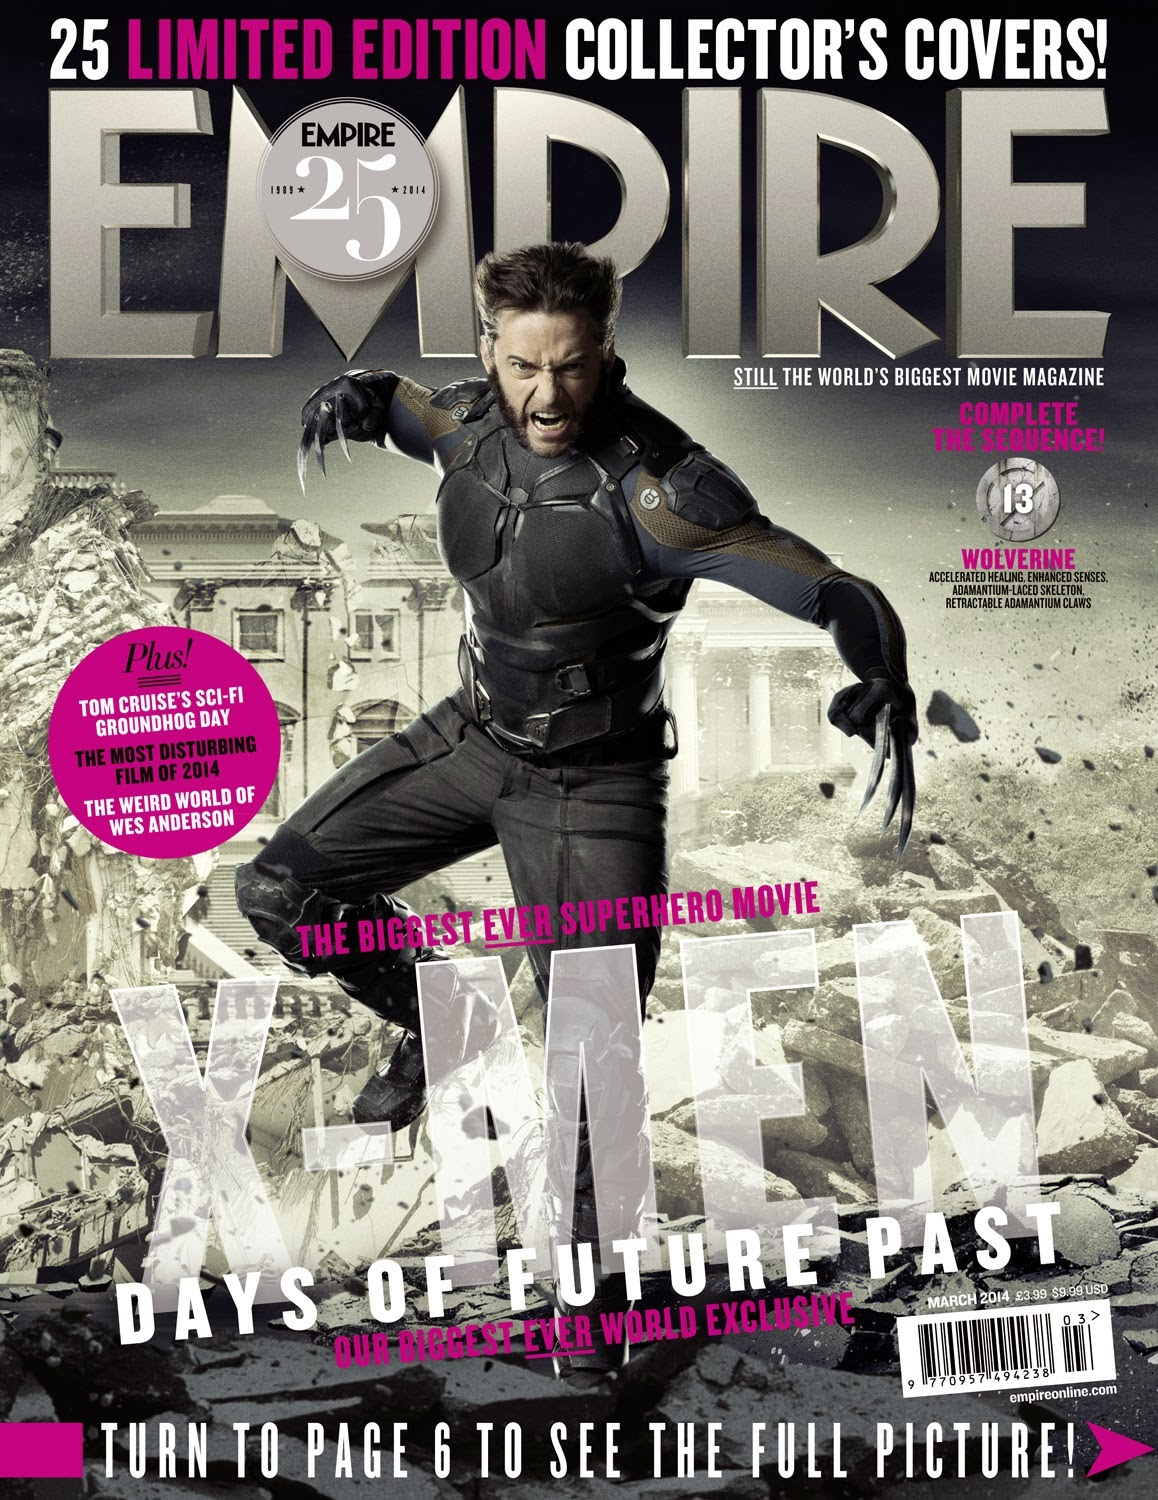 X-Men: on the cover of magazine Empire